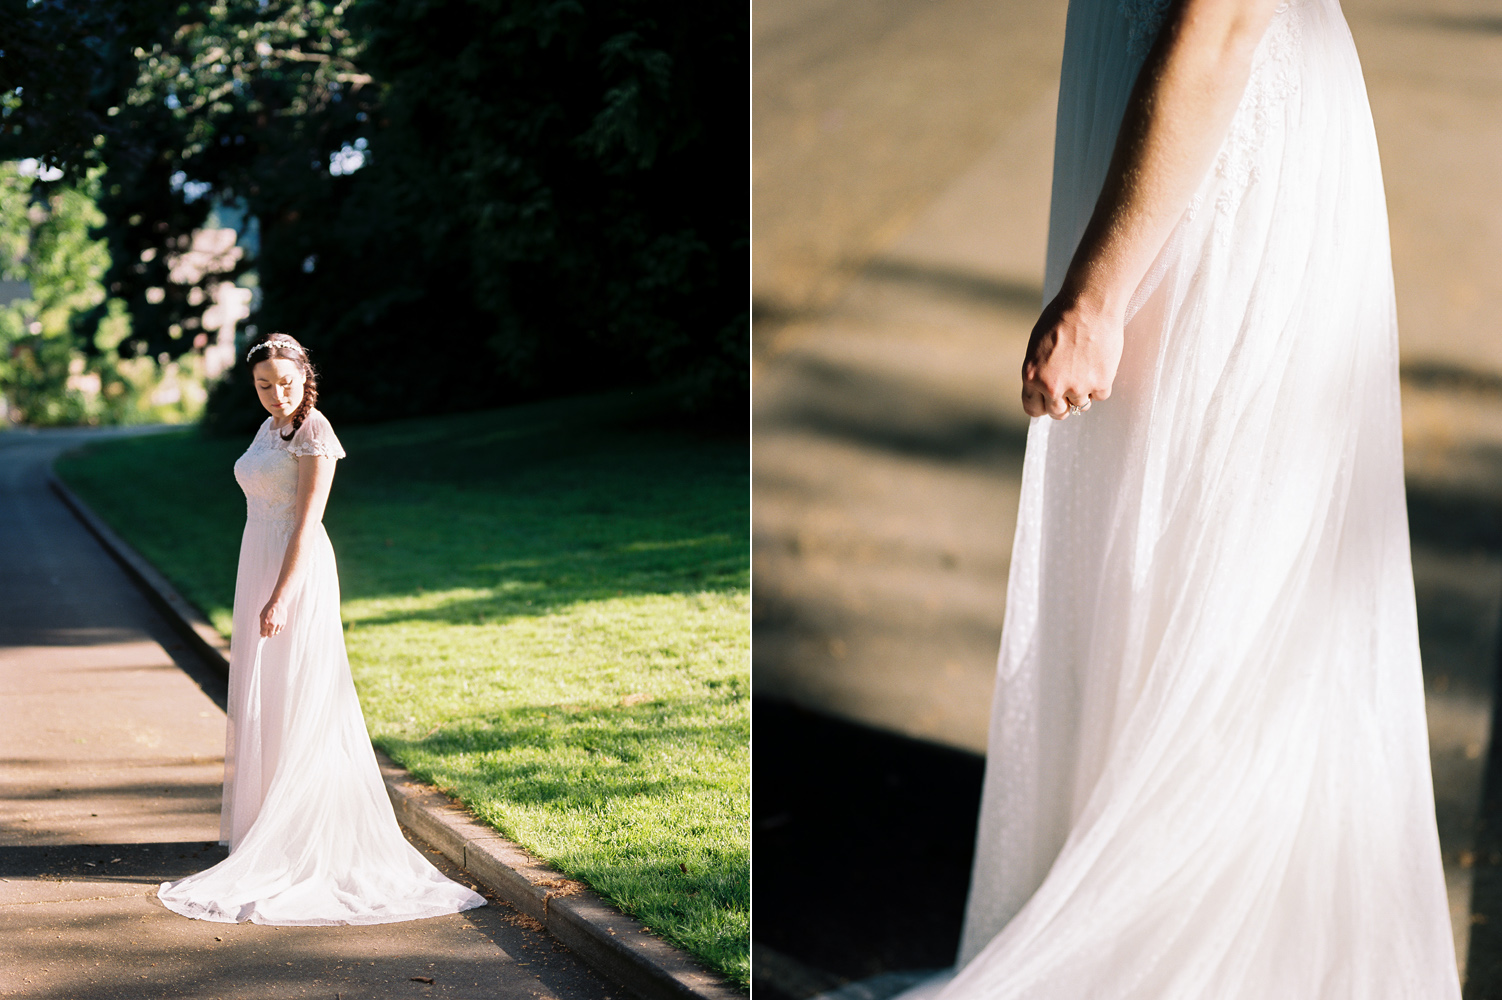 Summertime Ballard Locks Seattle Wedding Bridal Portrait Photography